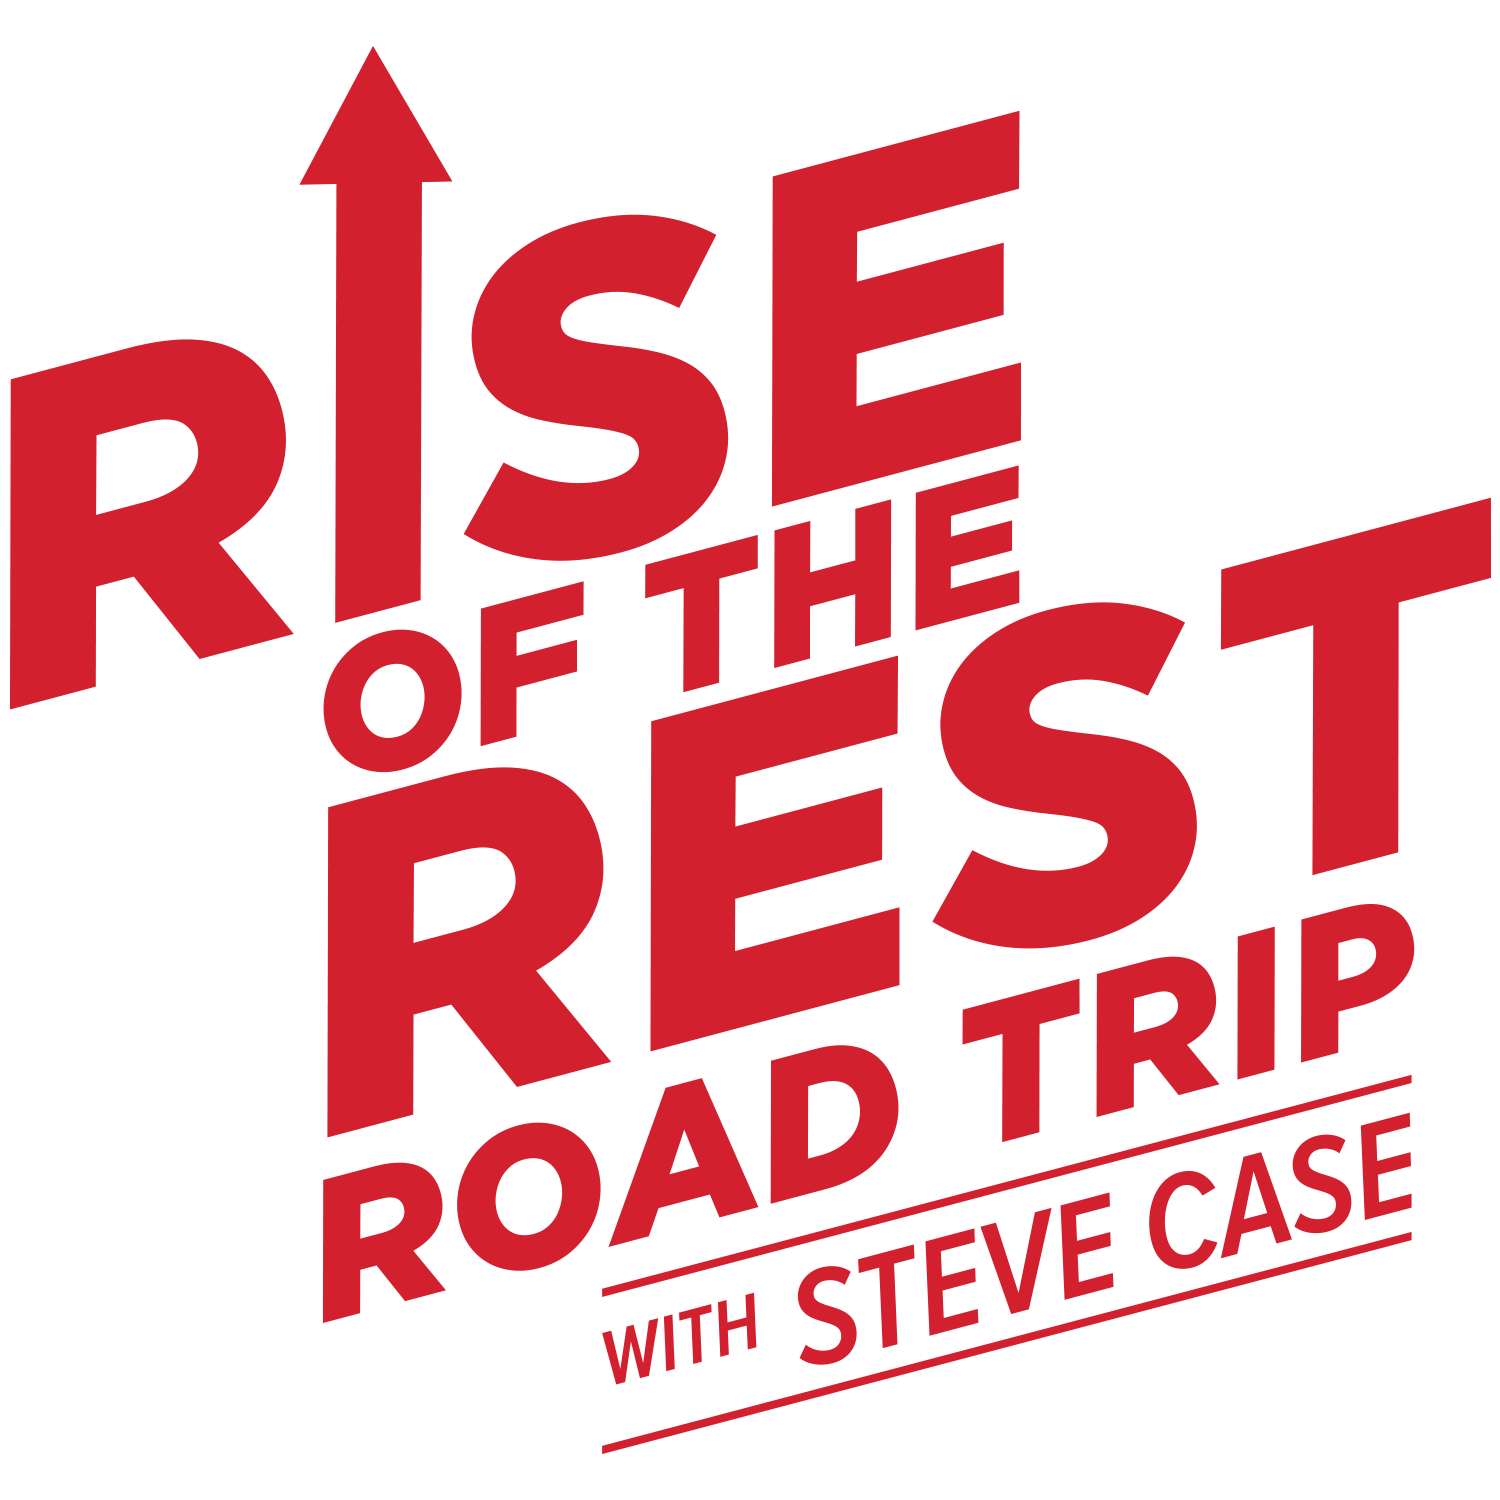 Rise of the Rest: Miami, FL / Thursday, May 2 4:00 PM - 7:00 PM